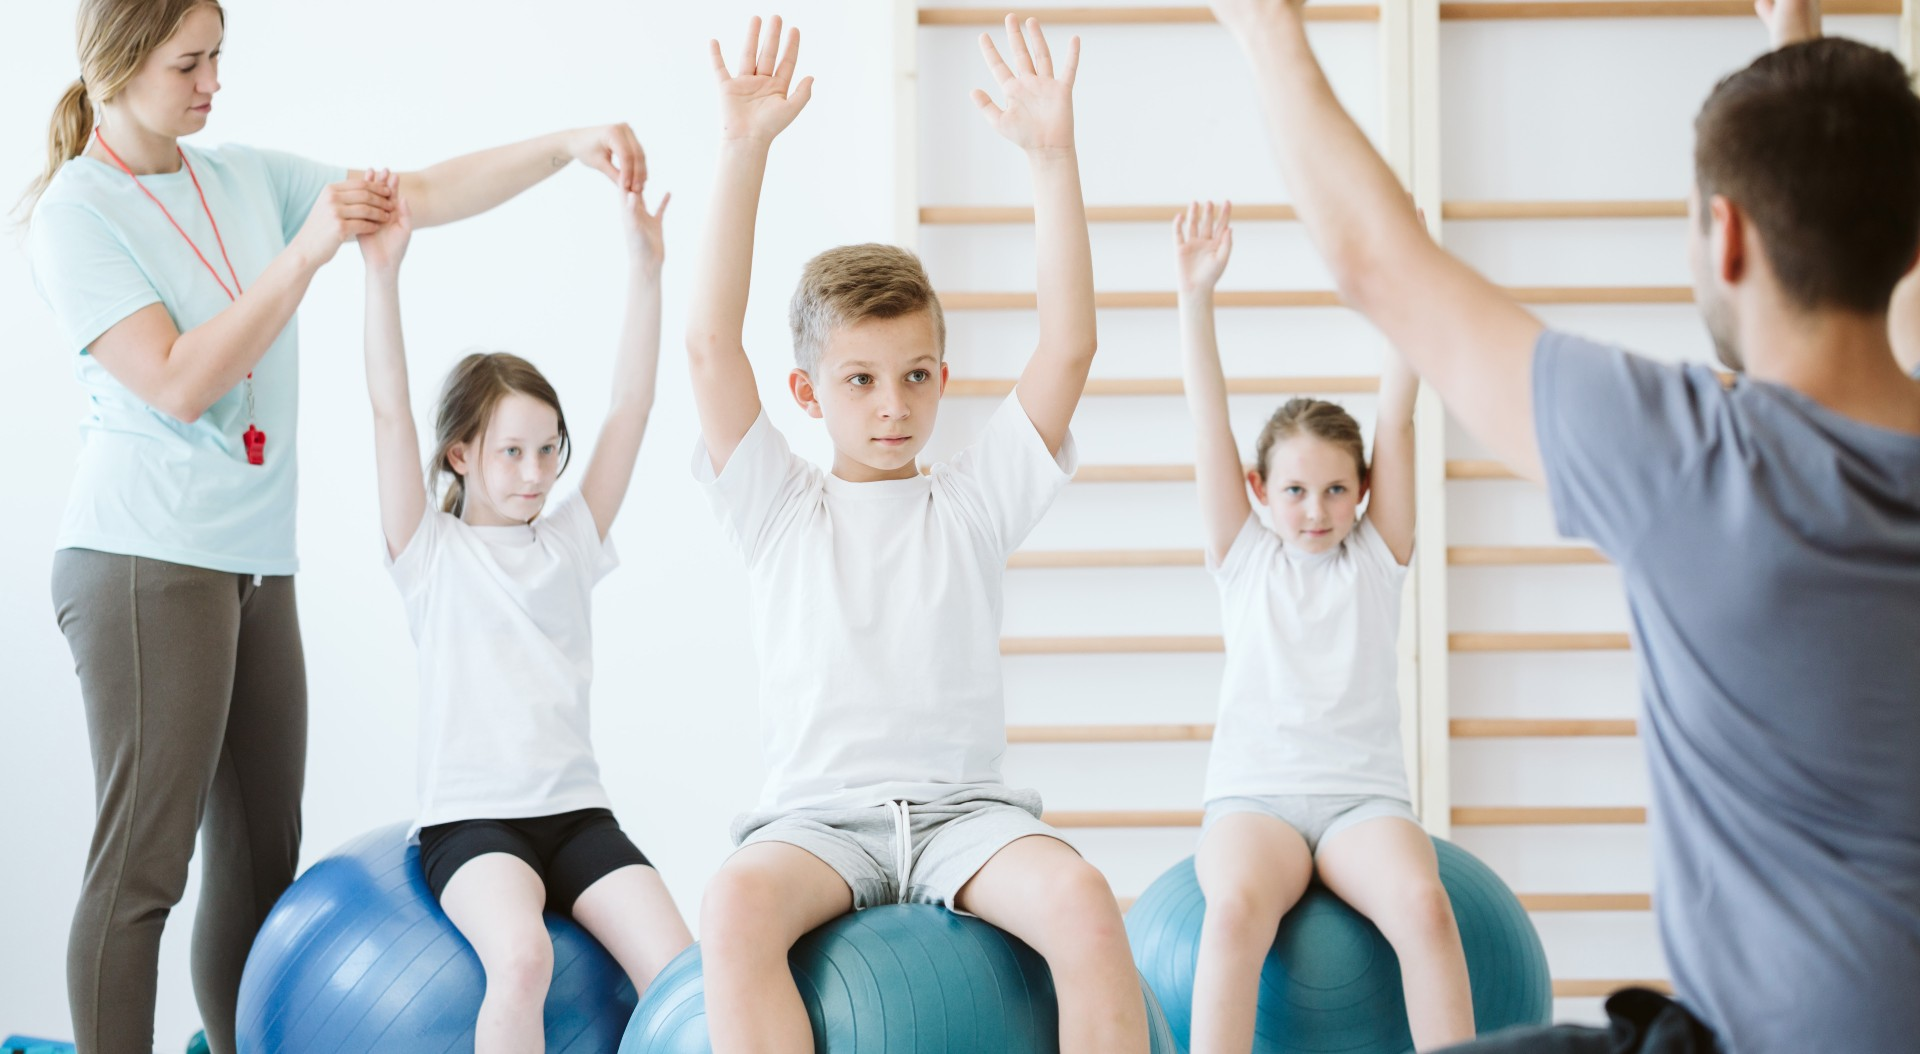 Kids stretching during a P.E. class in a gym